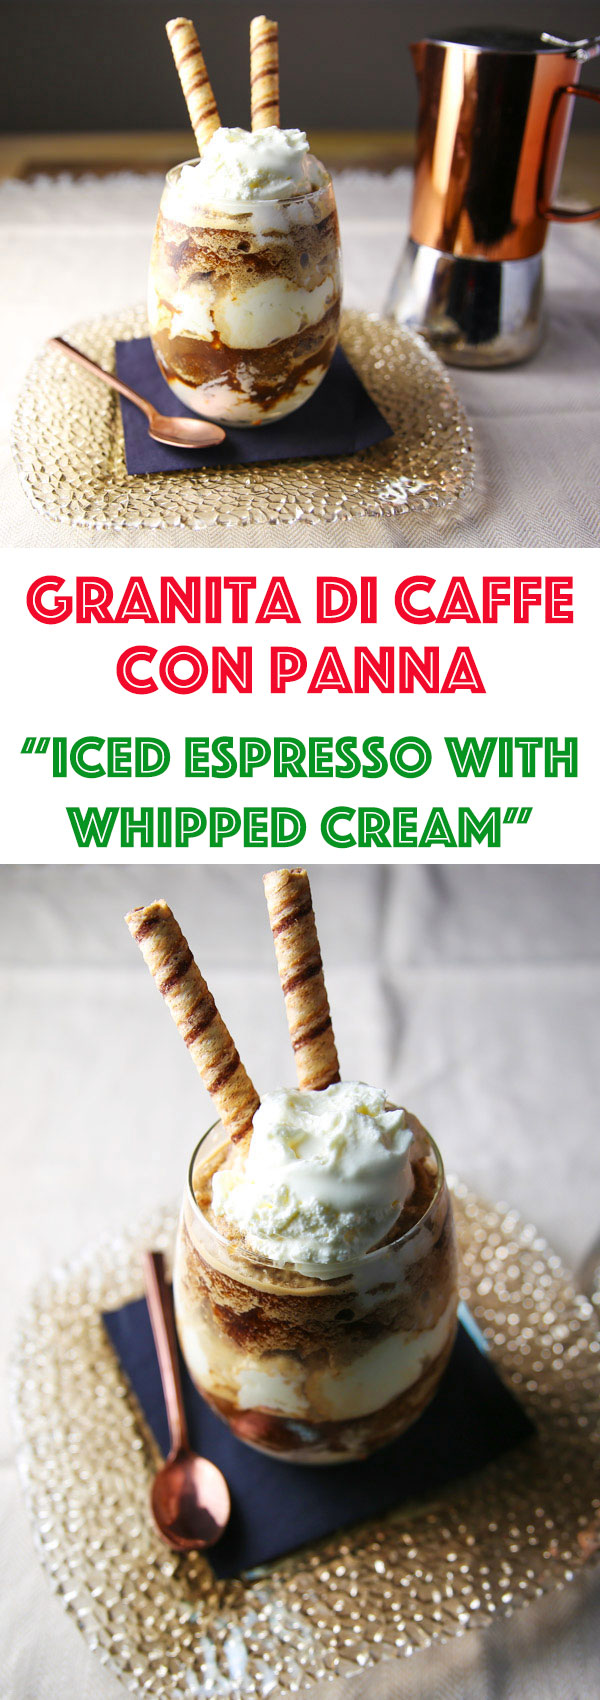 Granita Di Caffe Con Panna (Iced Espresso with Whipped Cream) is an Italian tradition in the summer time! This is easy to make and makes for the perfect afternoon treat on a hot summer day!